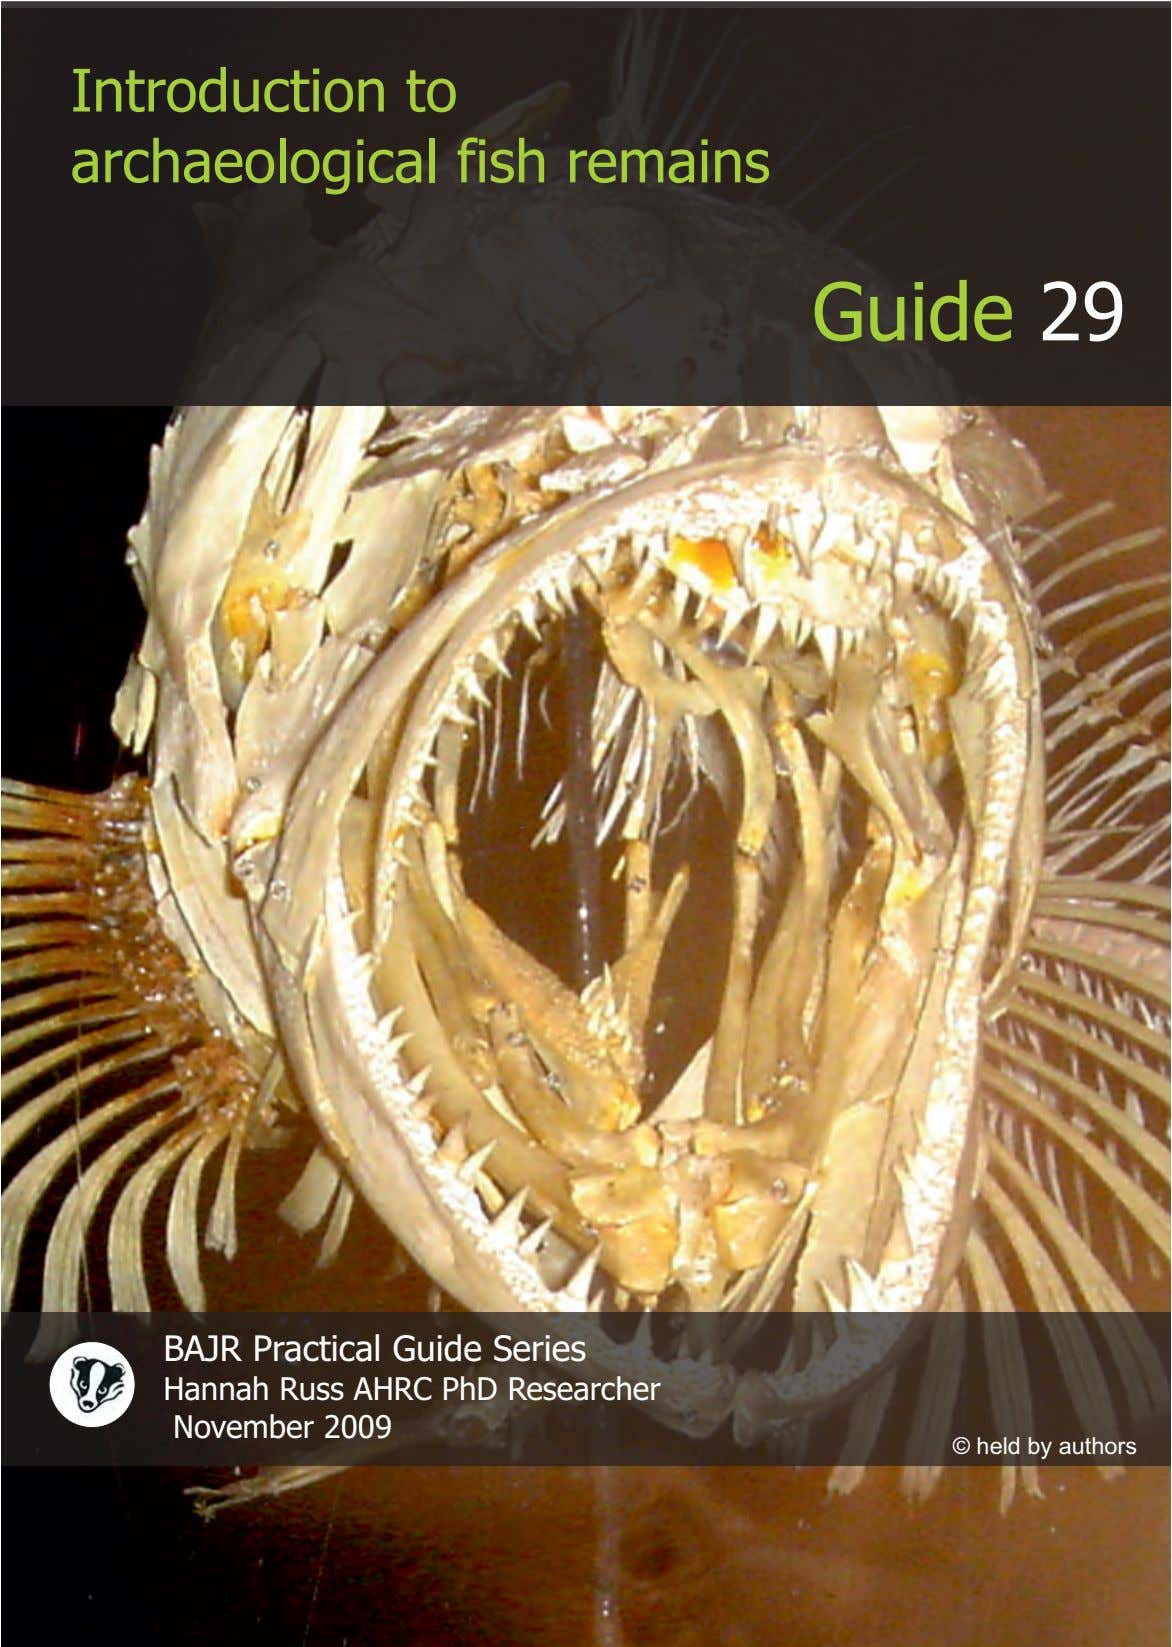 Introduction to archaeological fish remains Guide 29 BAJR Practical Guide Series Hannah Russ AHRC PhD